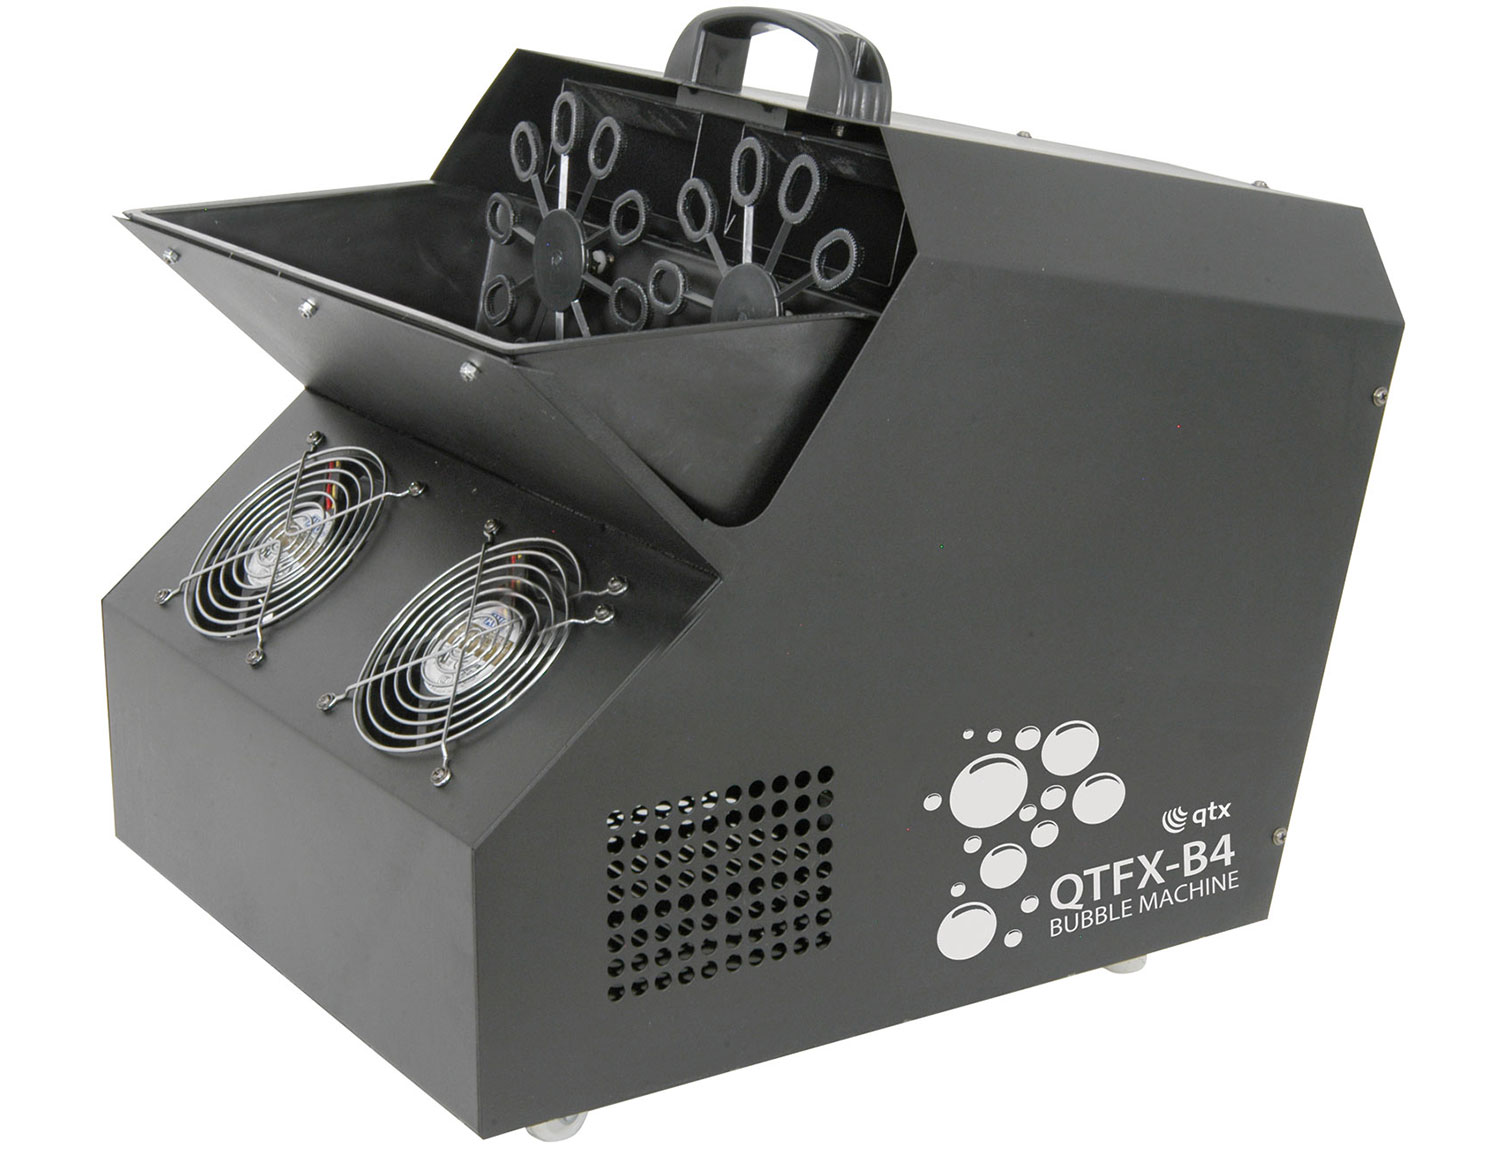 QTFX-B4 Bubble machine